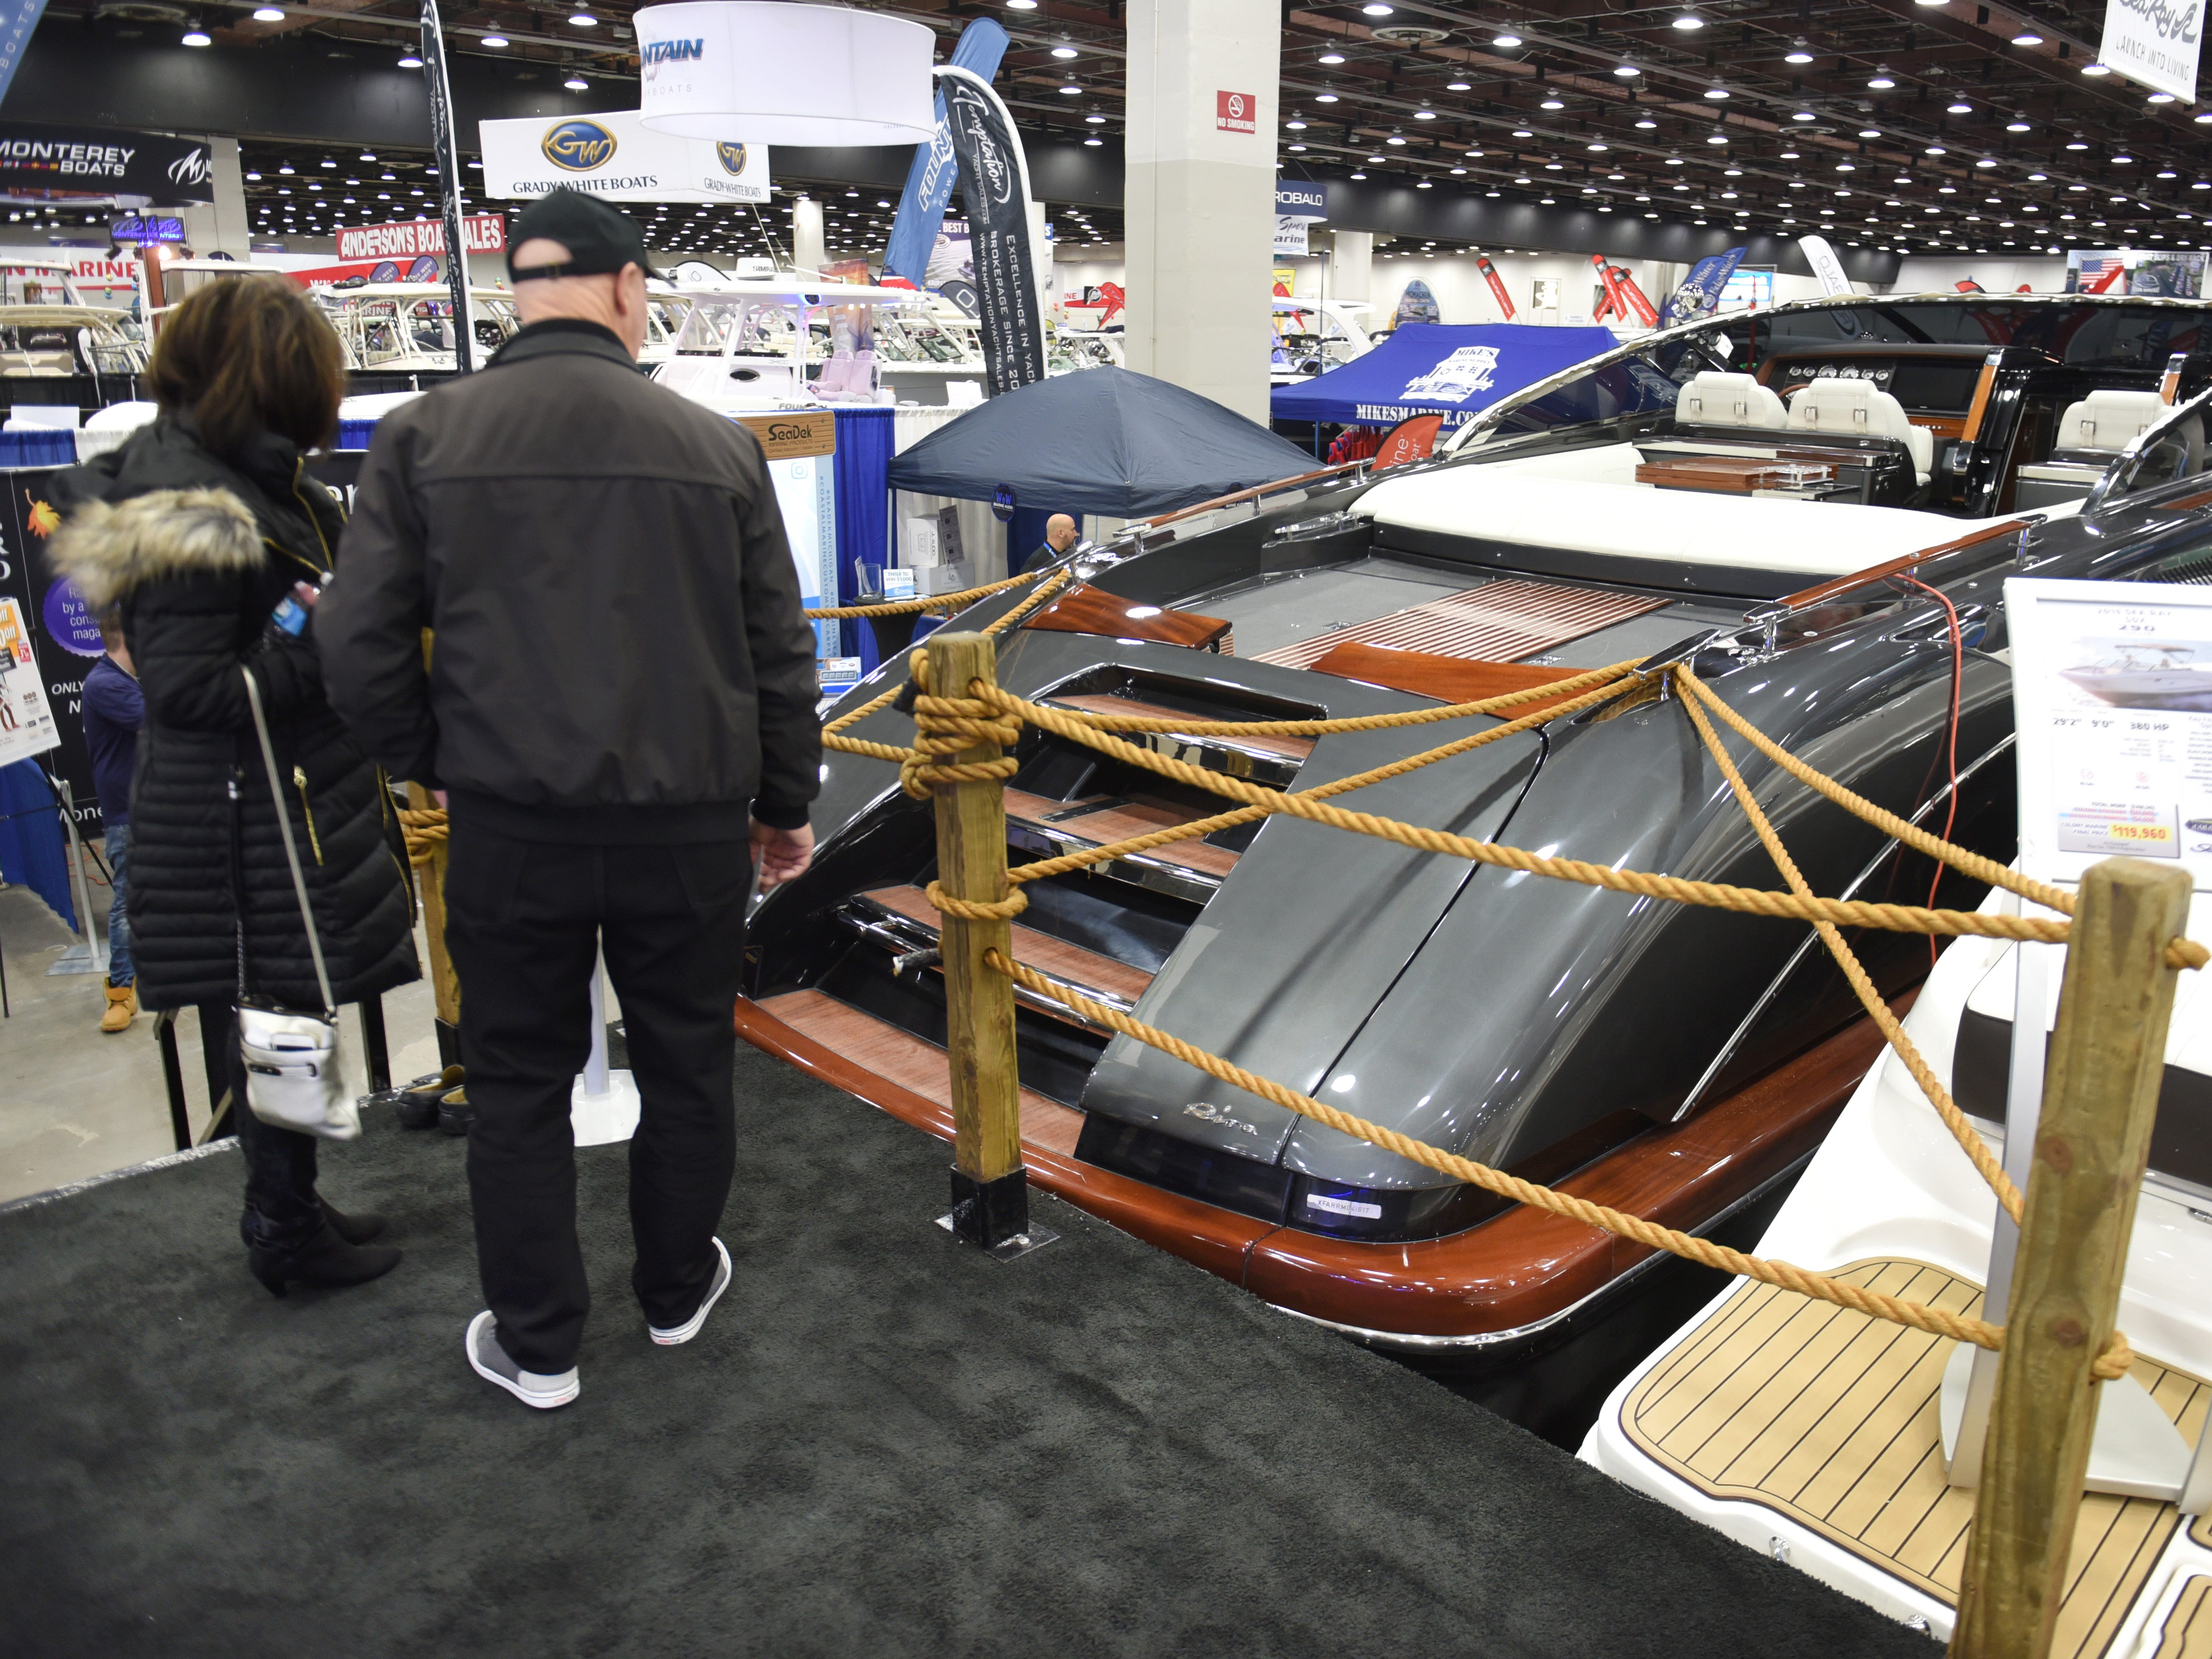 People look at the 2017 Rivamare with a price of $1,095.000 at the Detroit Boat Show at Cobo Center in Detroit on Saturday.